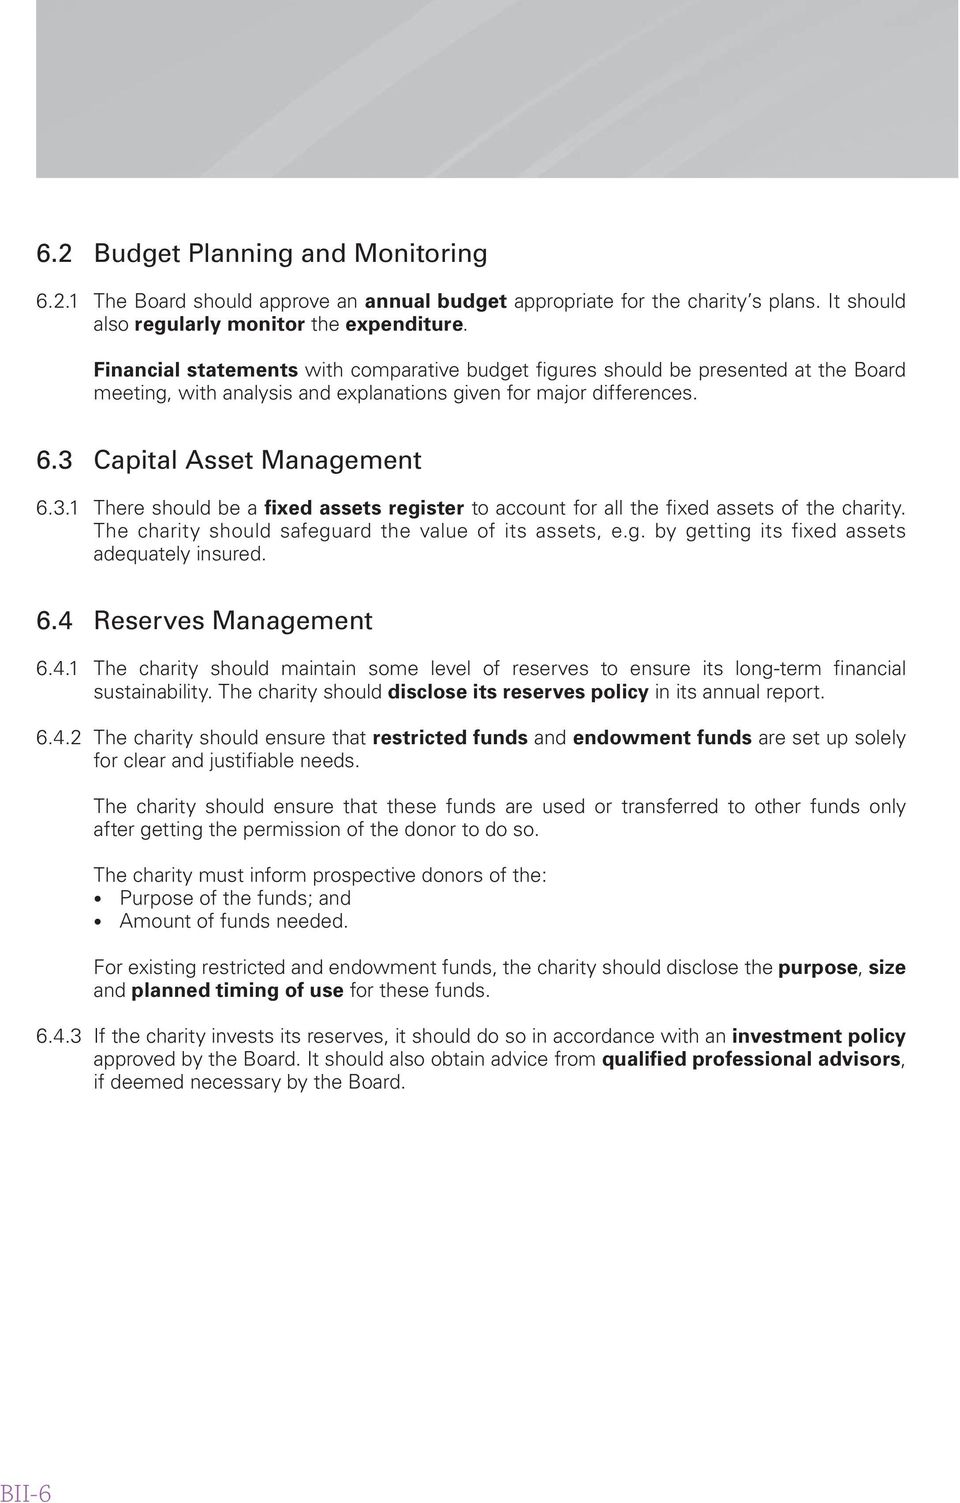 Capital Asset Management 6.3.1 There should be a fixed assets register to account for all the fixed assets of the charity. The charity should safeguard the value of its assets, e.g. by getting its fixed assets adequately insured.